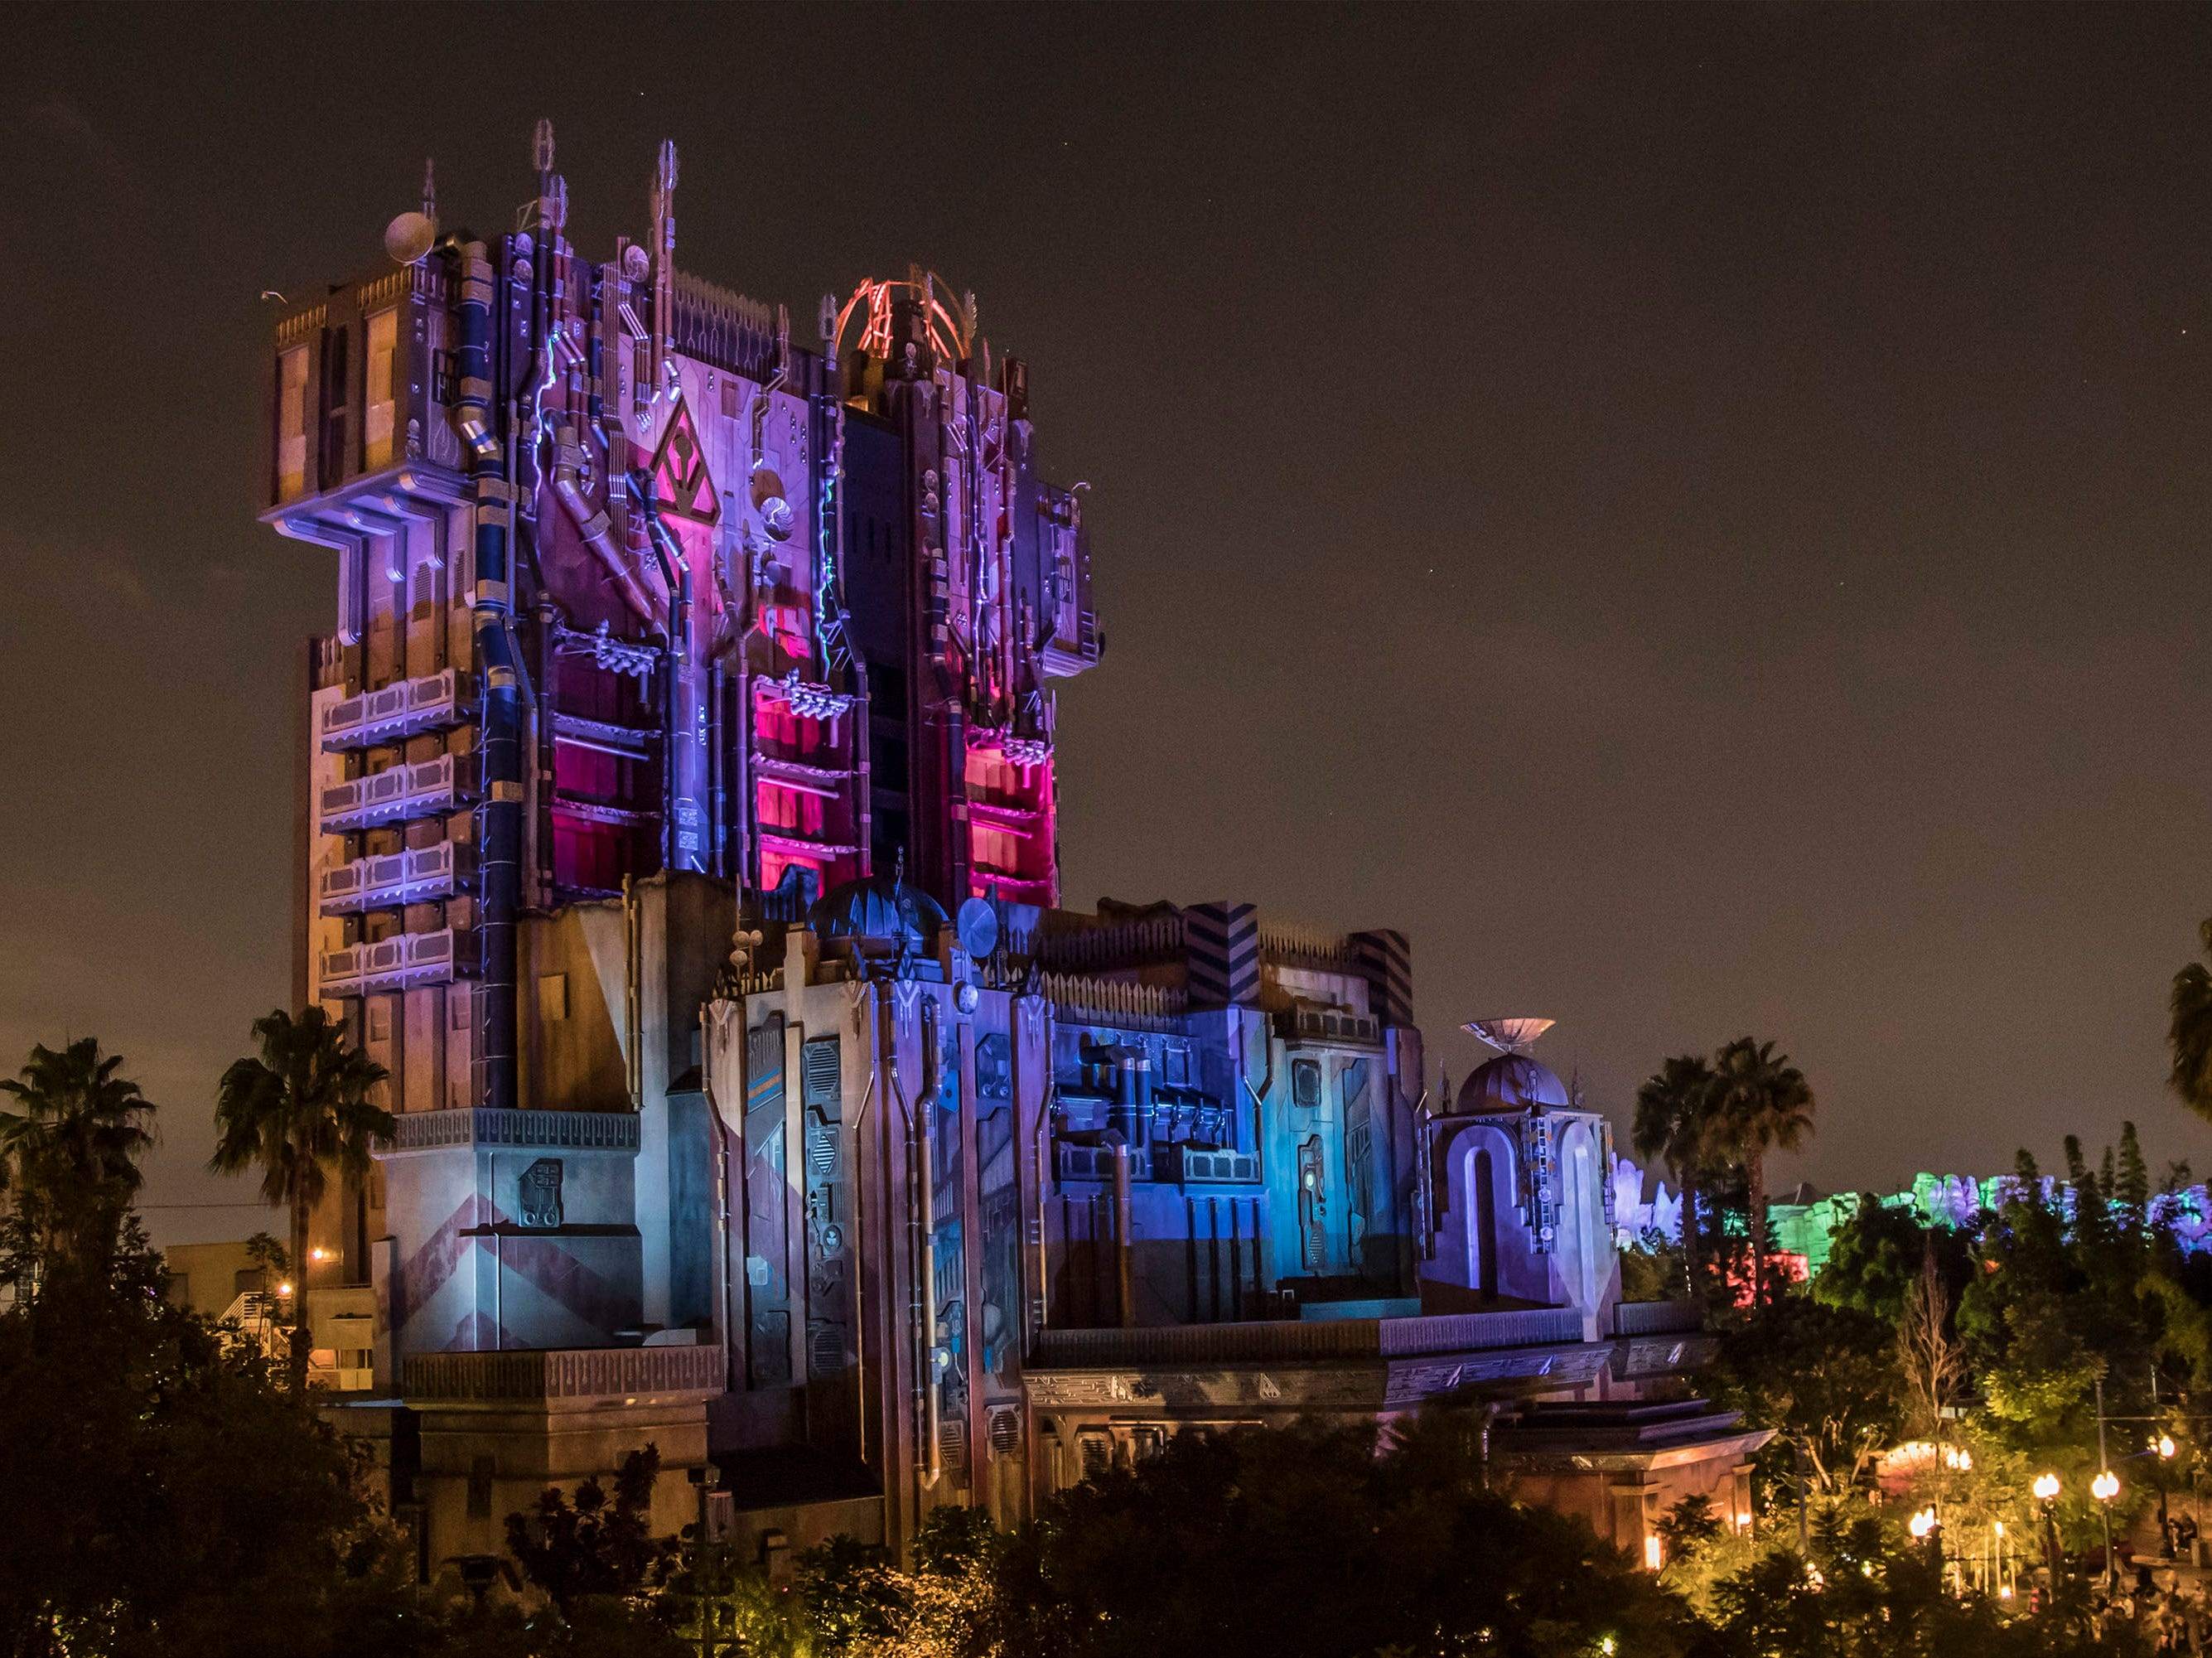 During Halloween Time at Disney California Adventure, the popular attraction transforms each evening from Mission: BREAKOUT! to Monsters After Dark. Lighting on the exterior of the Fortress alerts guests that something inside has gone awry and empty glass cages greet guests in the lobby. Guests will be tasked with helping Rocket find Groot amidst the monsters inside.